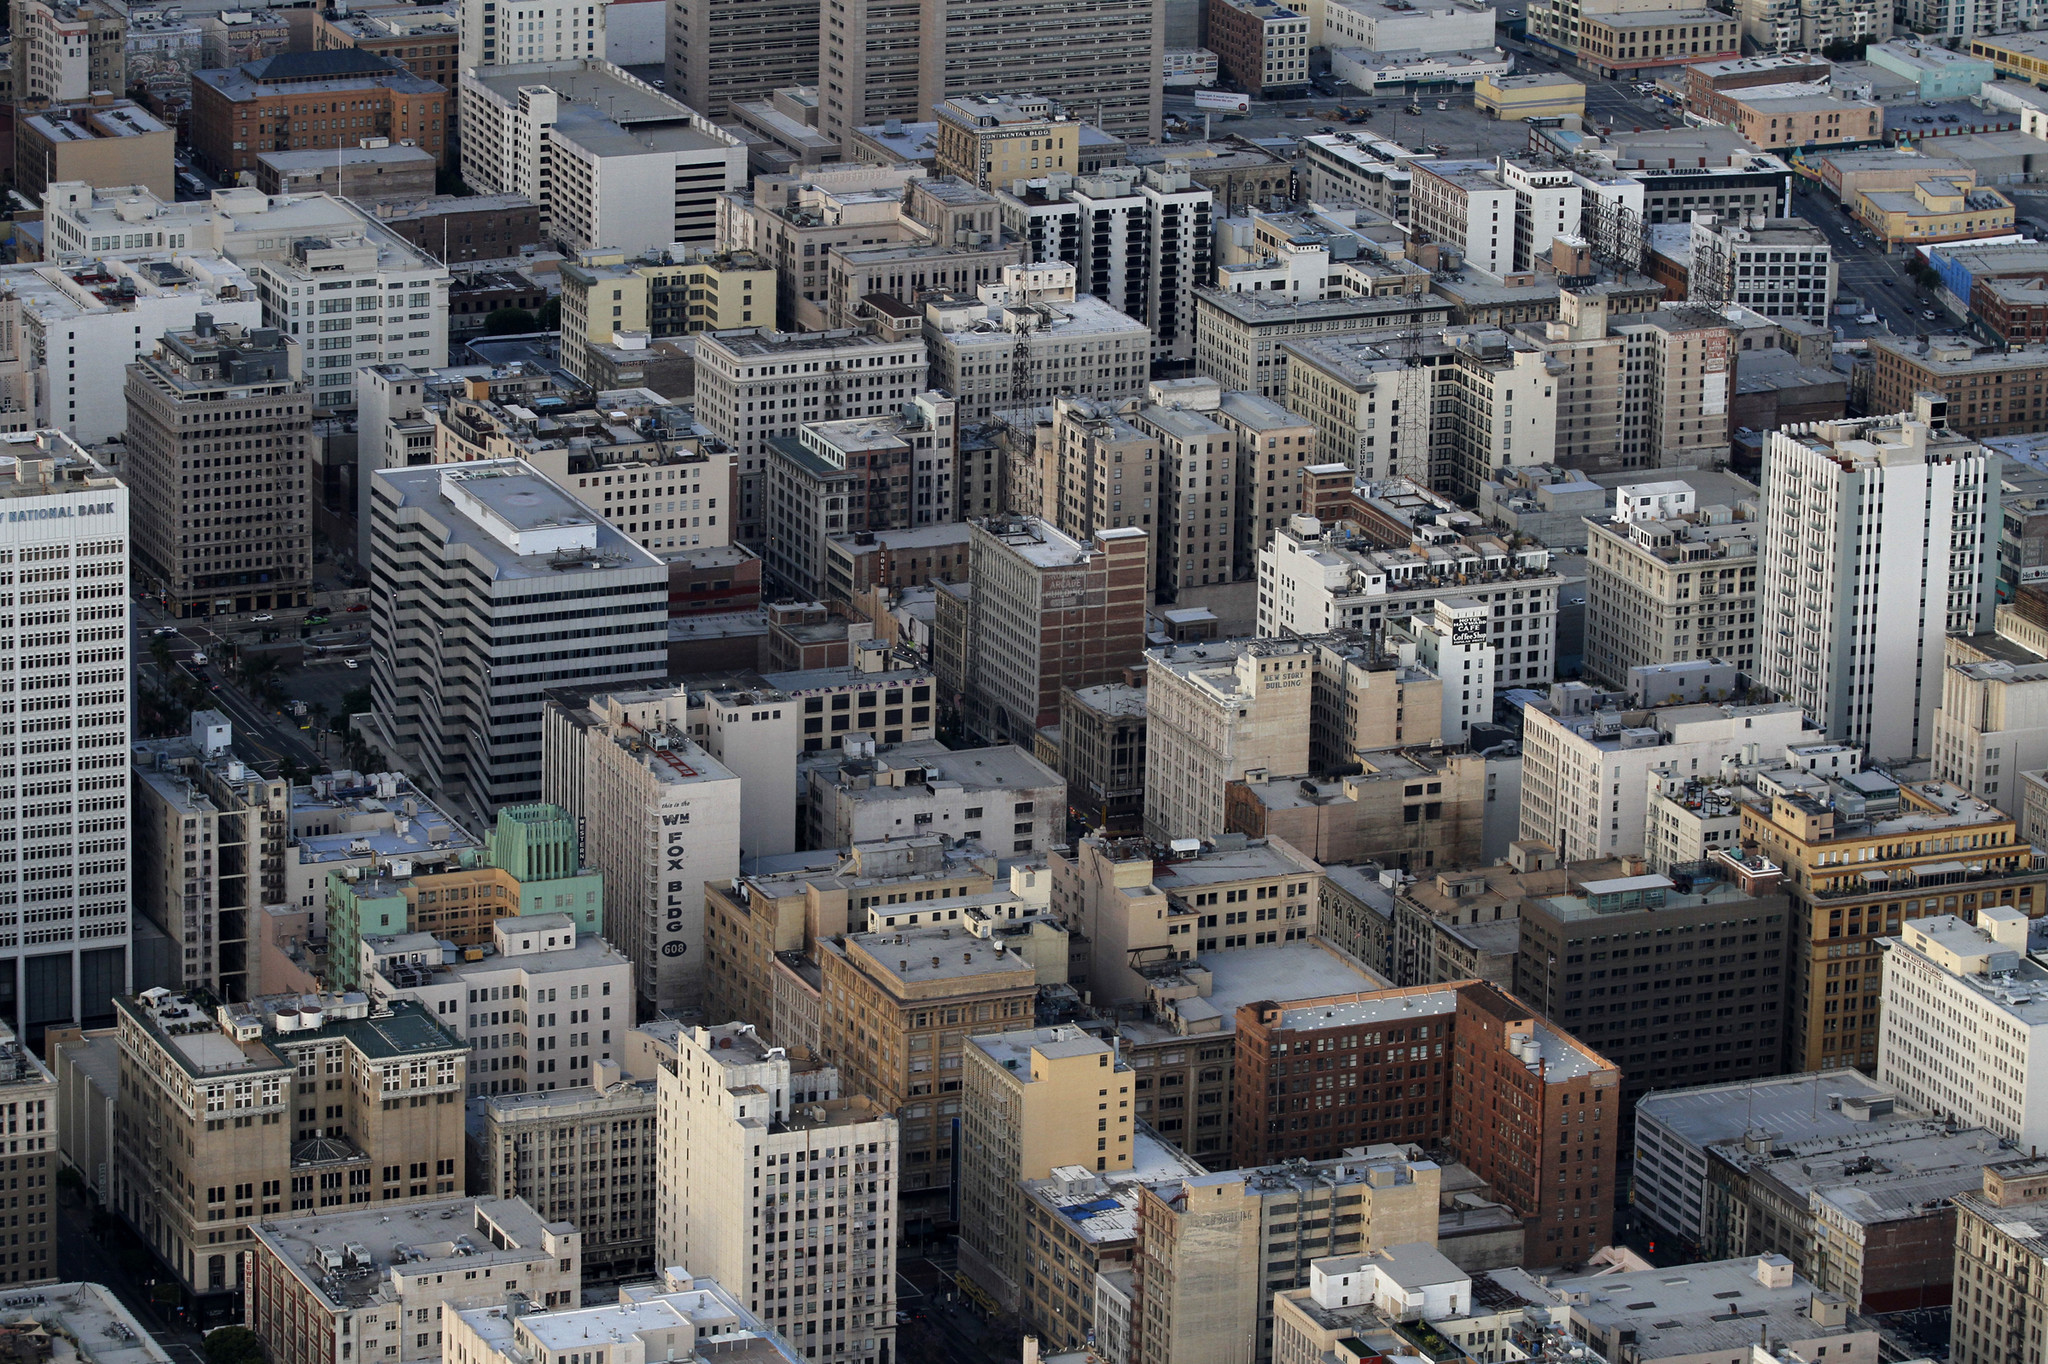 An aerial view shows downtown Los Angeles in 2010.